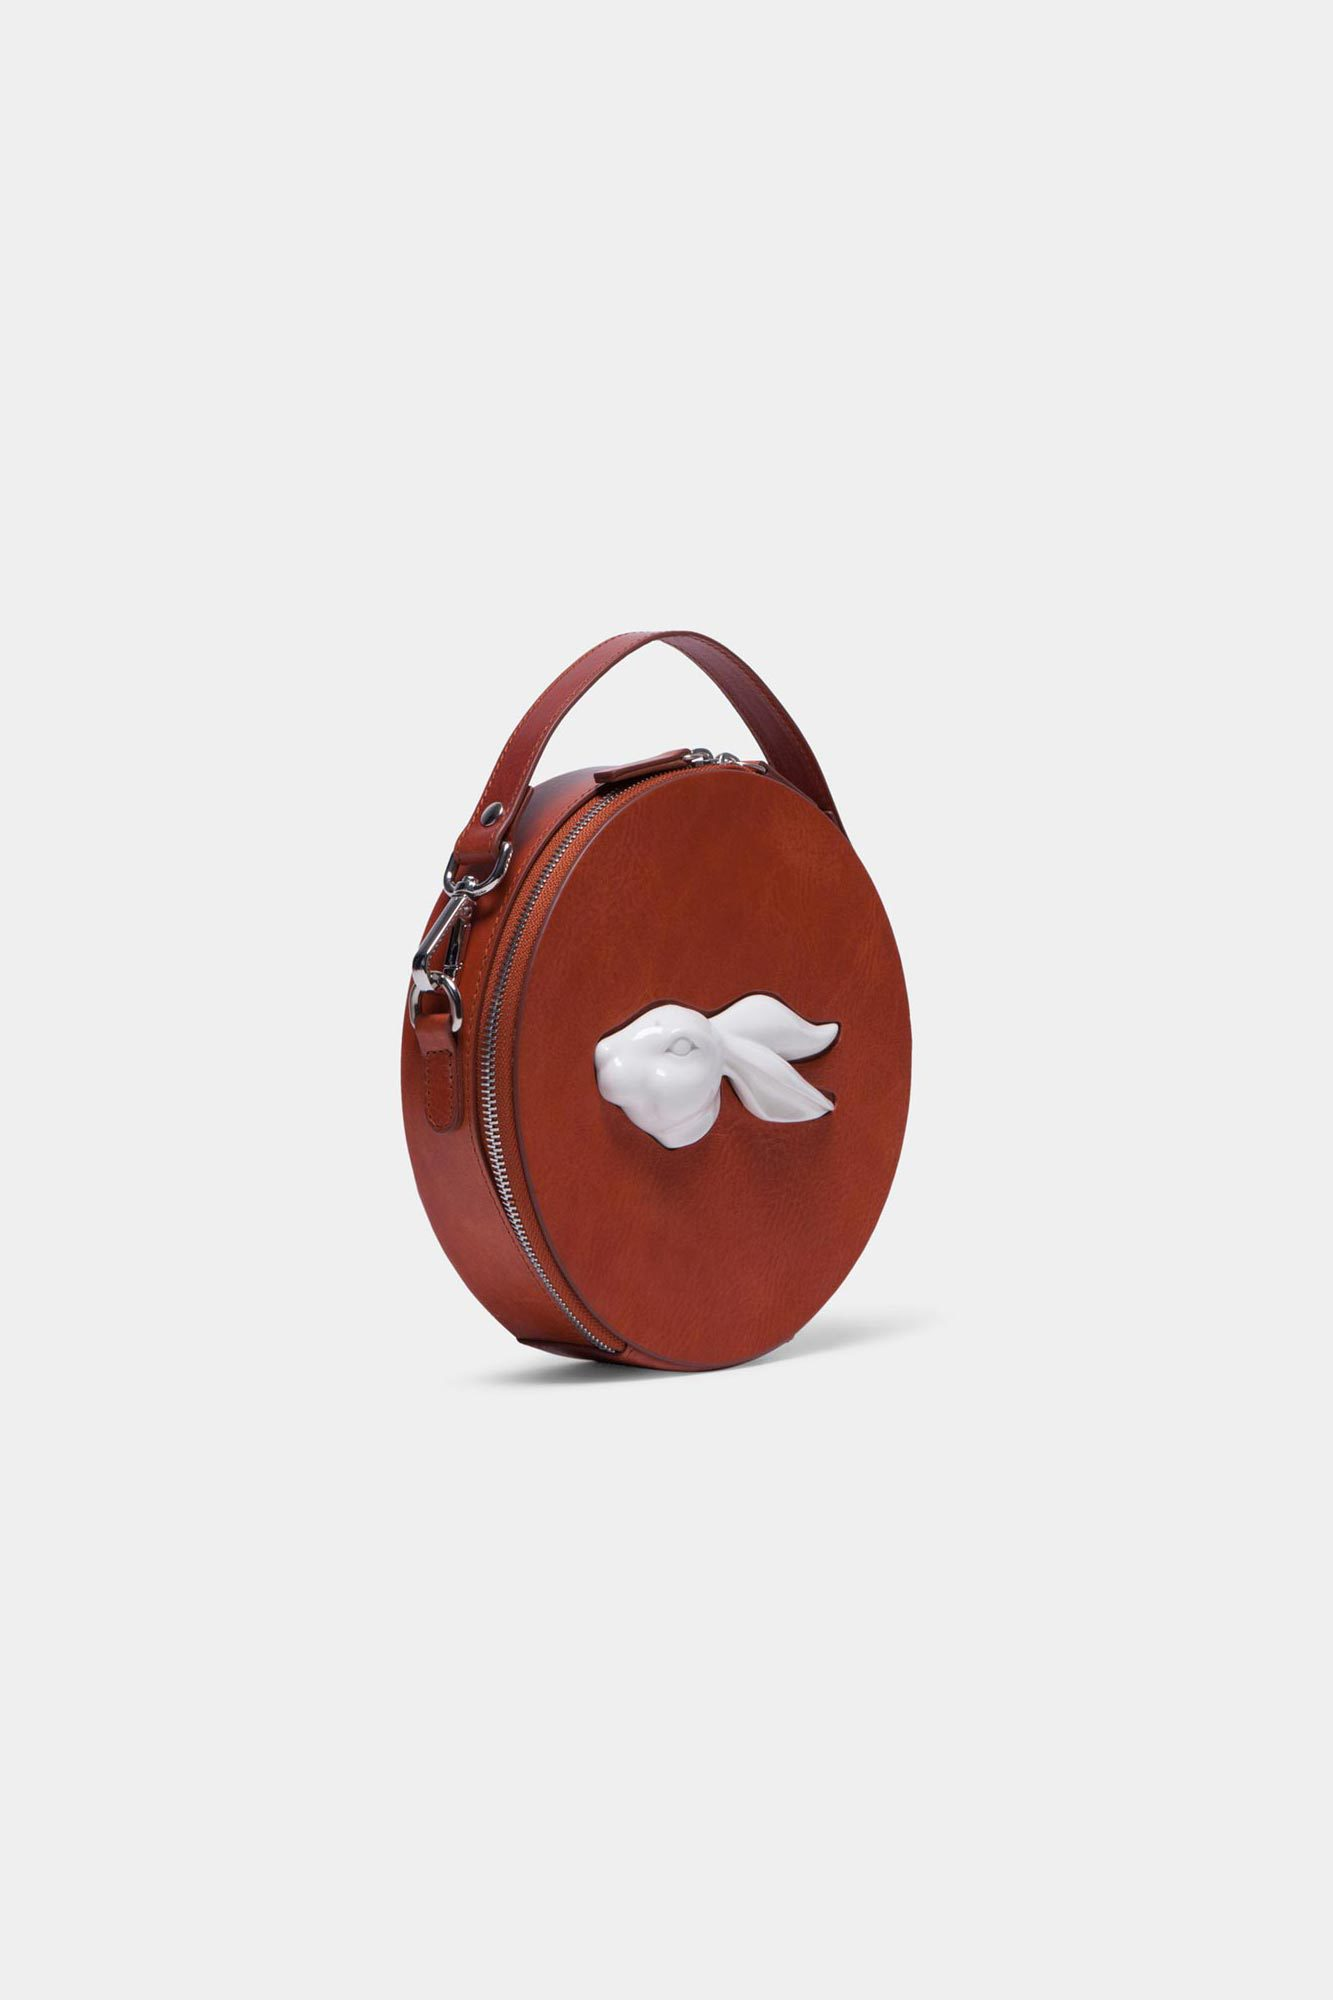 Round Rabbit Head Bag Vegetable Brandy